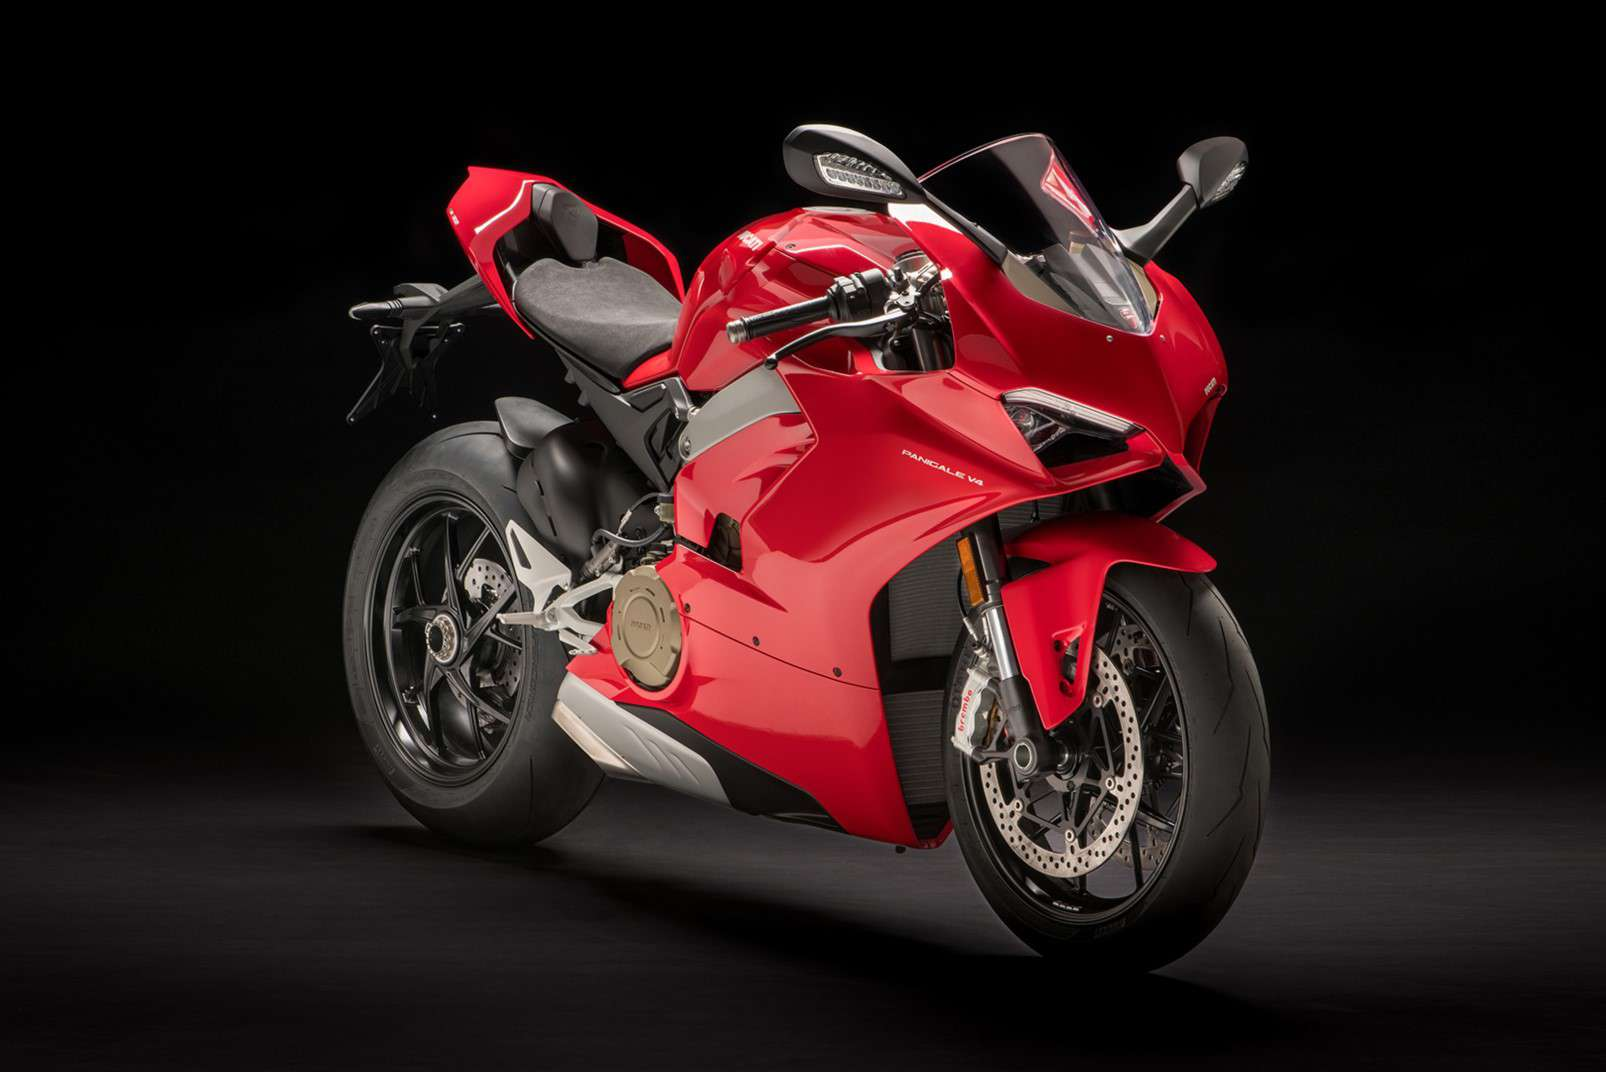 Ducati Panigale V4 expression of power